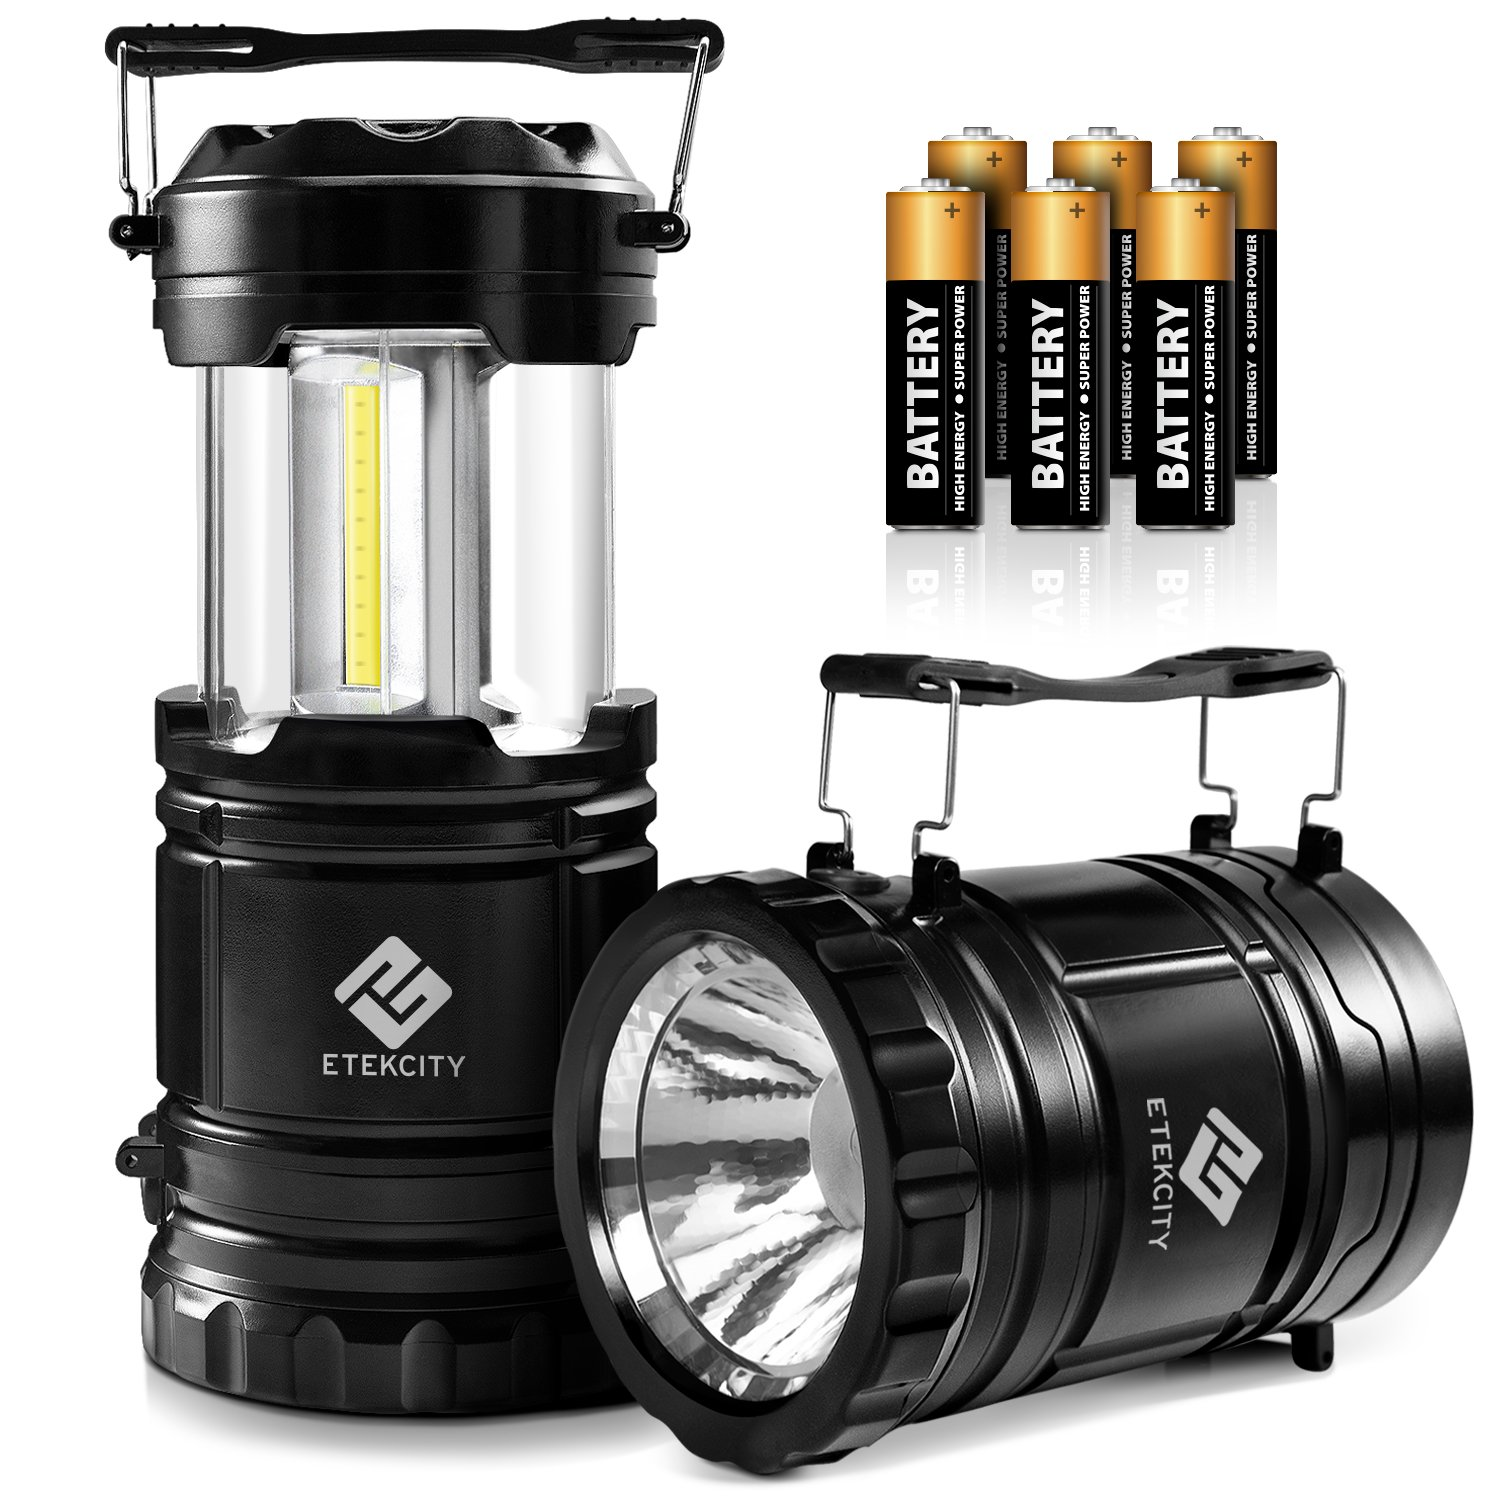 Etekcity Portable LED Camping Lantern and Flashlight with AA Batteries for Camping, Hiking, Reading, Hurricane, Power Outage (Black, Collapsible) (CLF50)